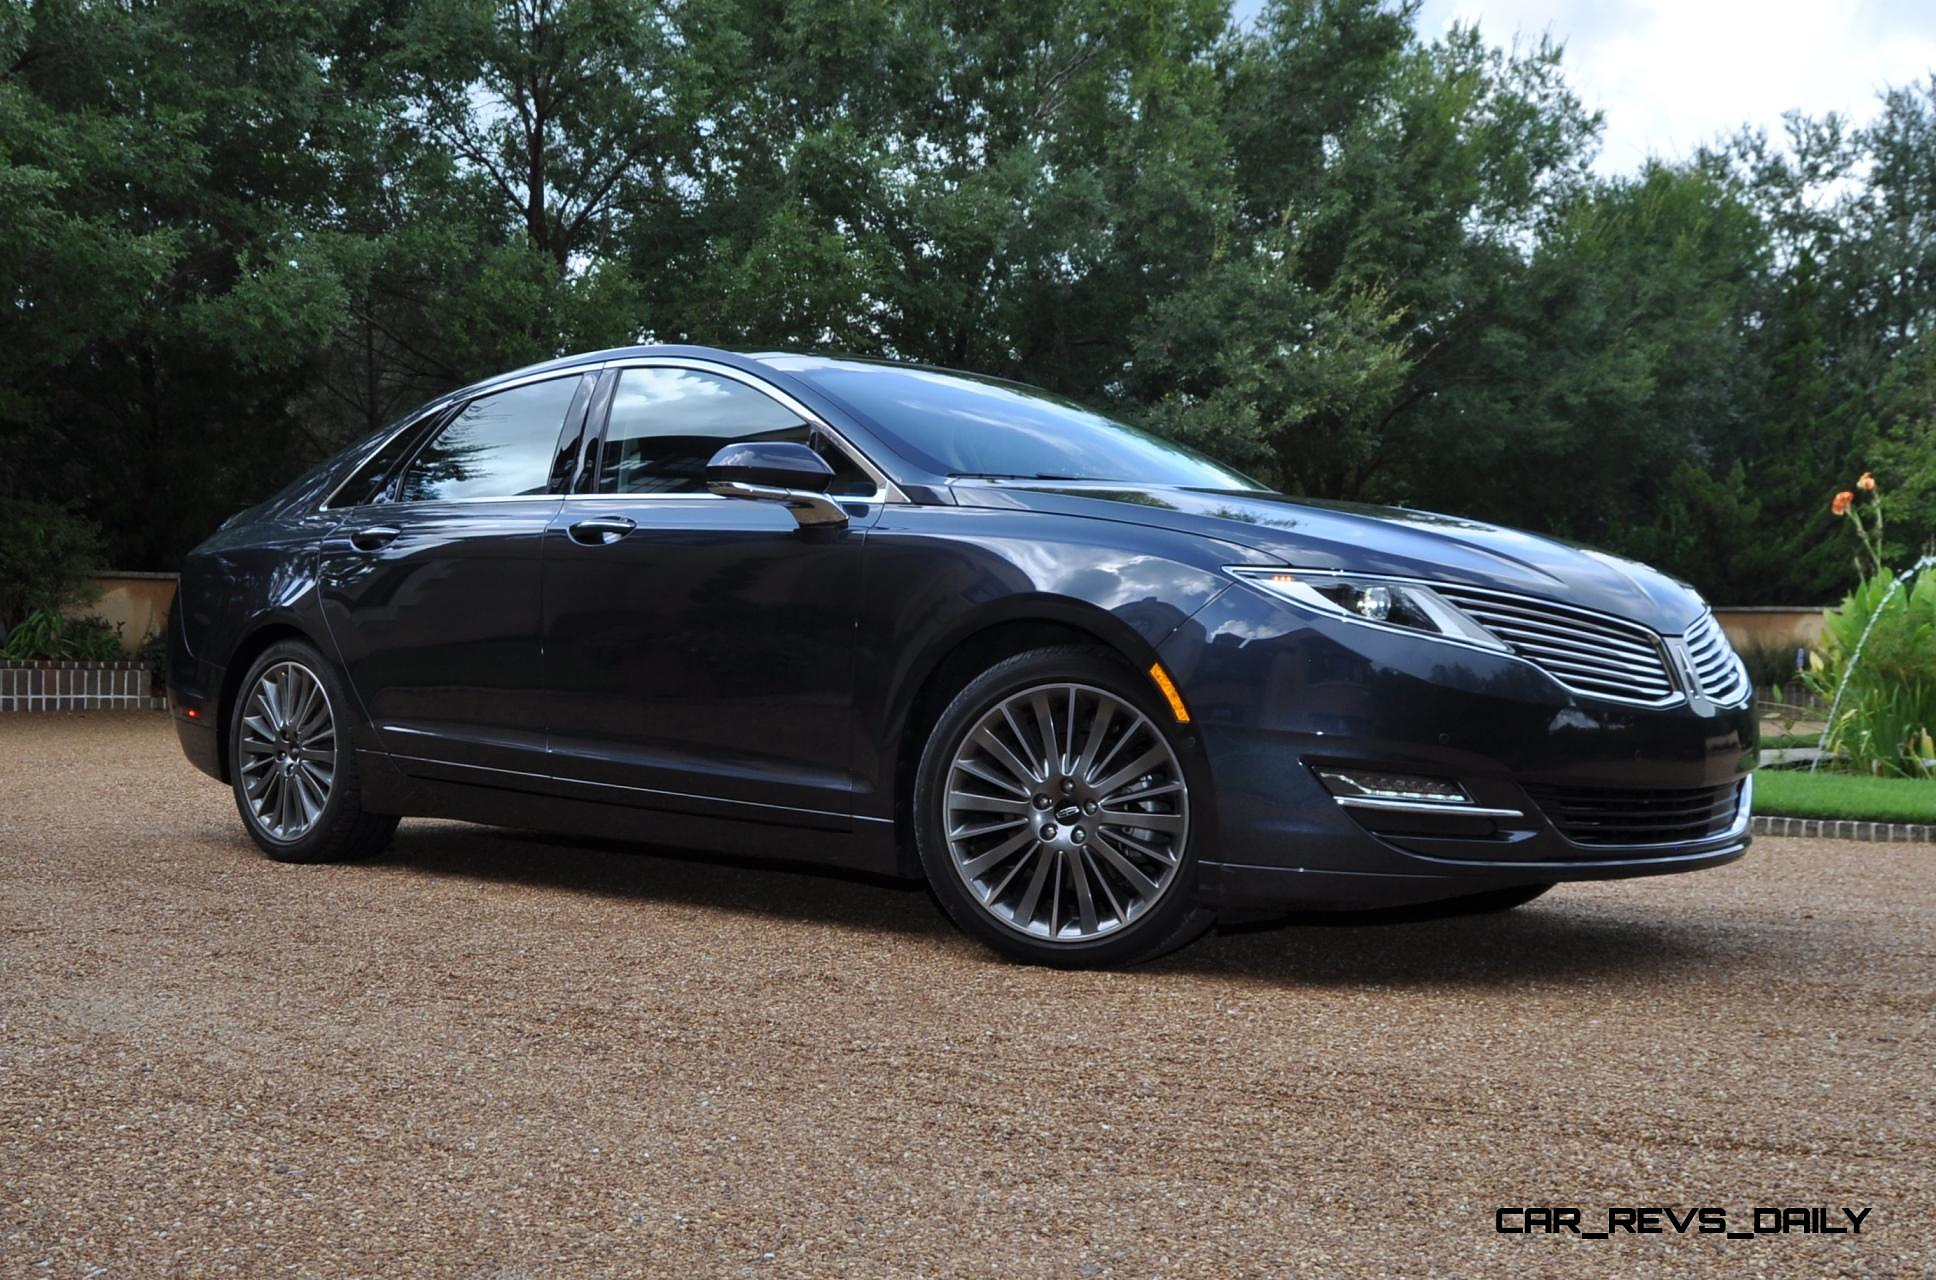 road test review 2014 lincoln mkz 3 7 awd 111 car revs. Black Bedroom Furniture Sets. Home Design Ideas